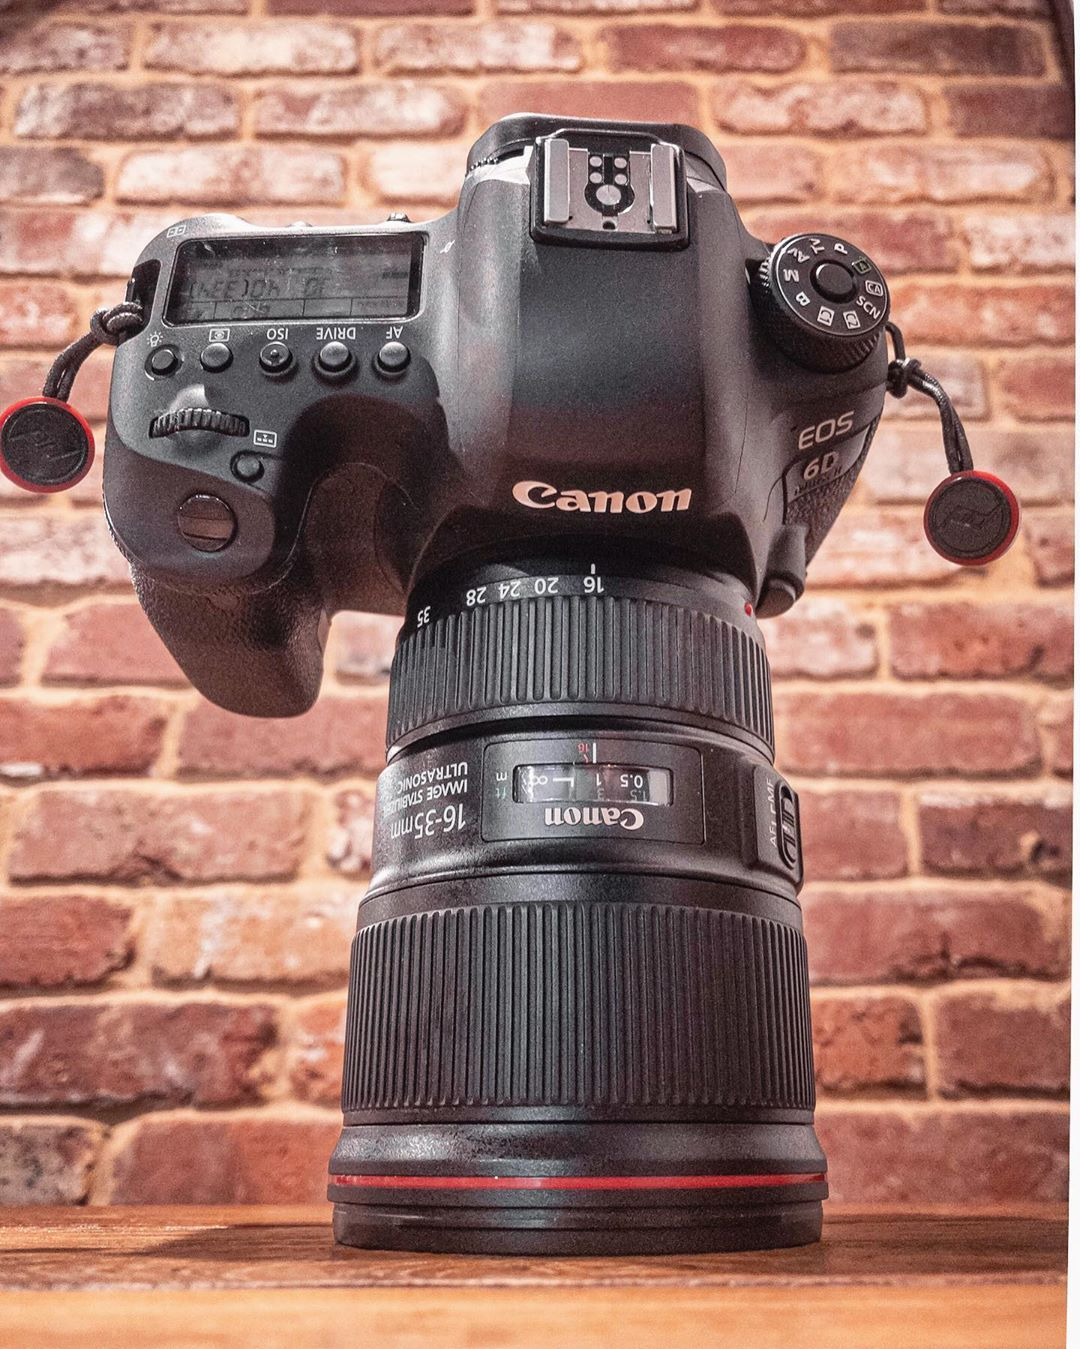 By Far This Canon 16 35mm F 4l Is Is One One My Favourite Lenses Closely Followed Buy The Canon 70 200mm F 4l Both Lenses Have Their Sweet